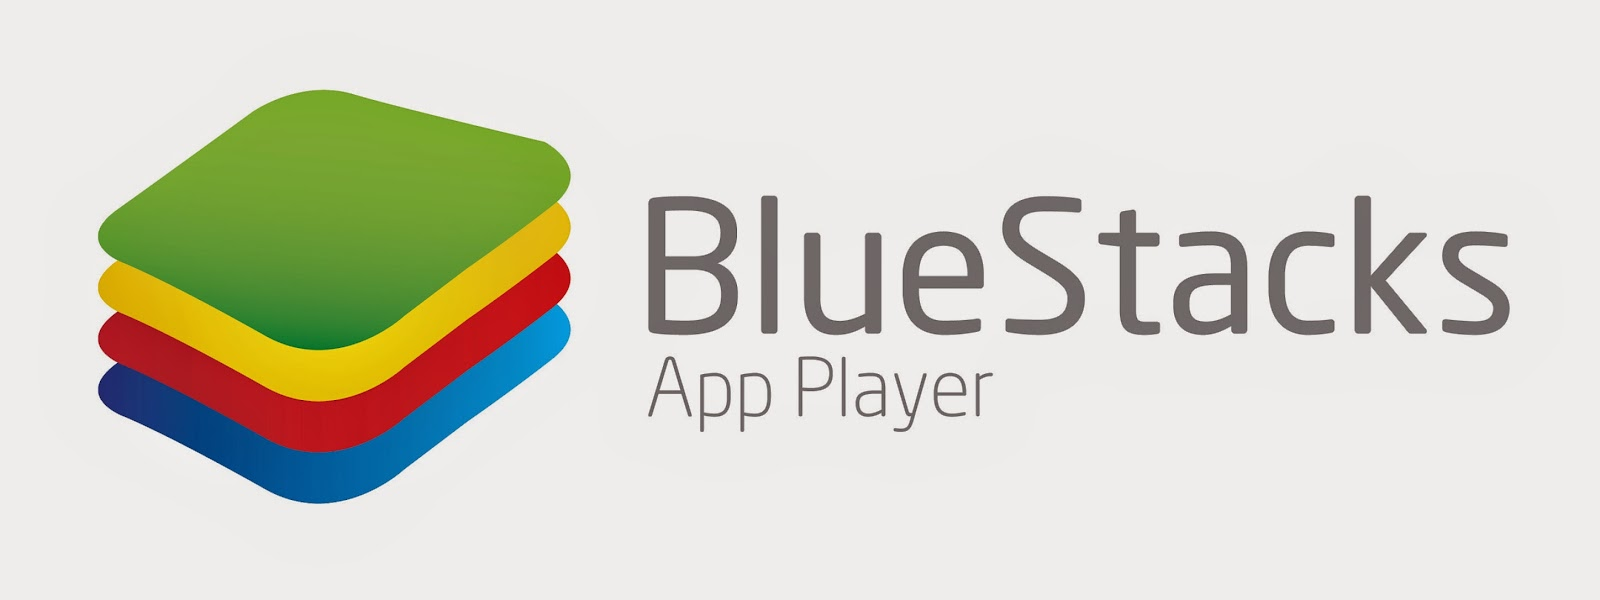 Firstly download Bluestacks